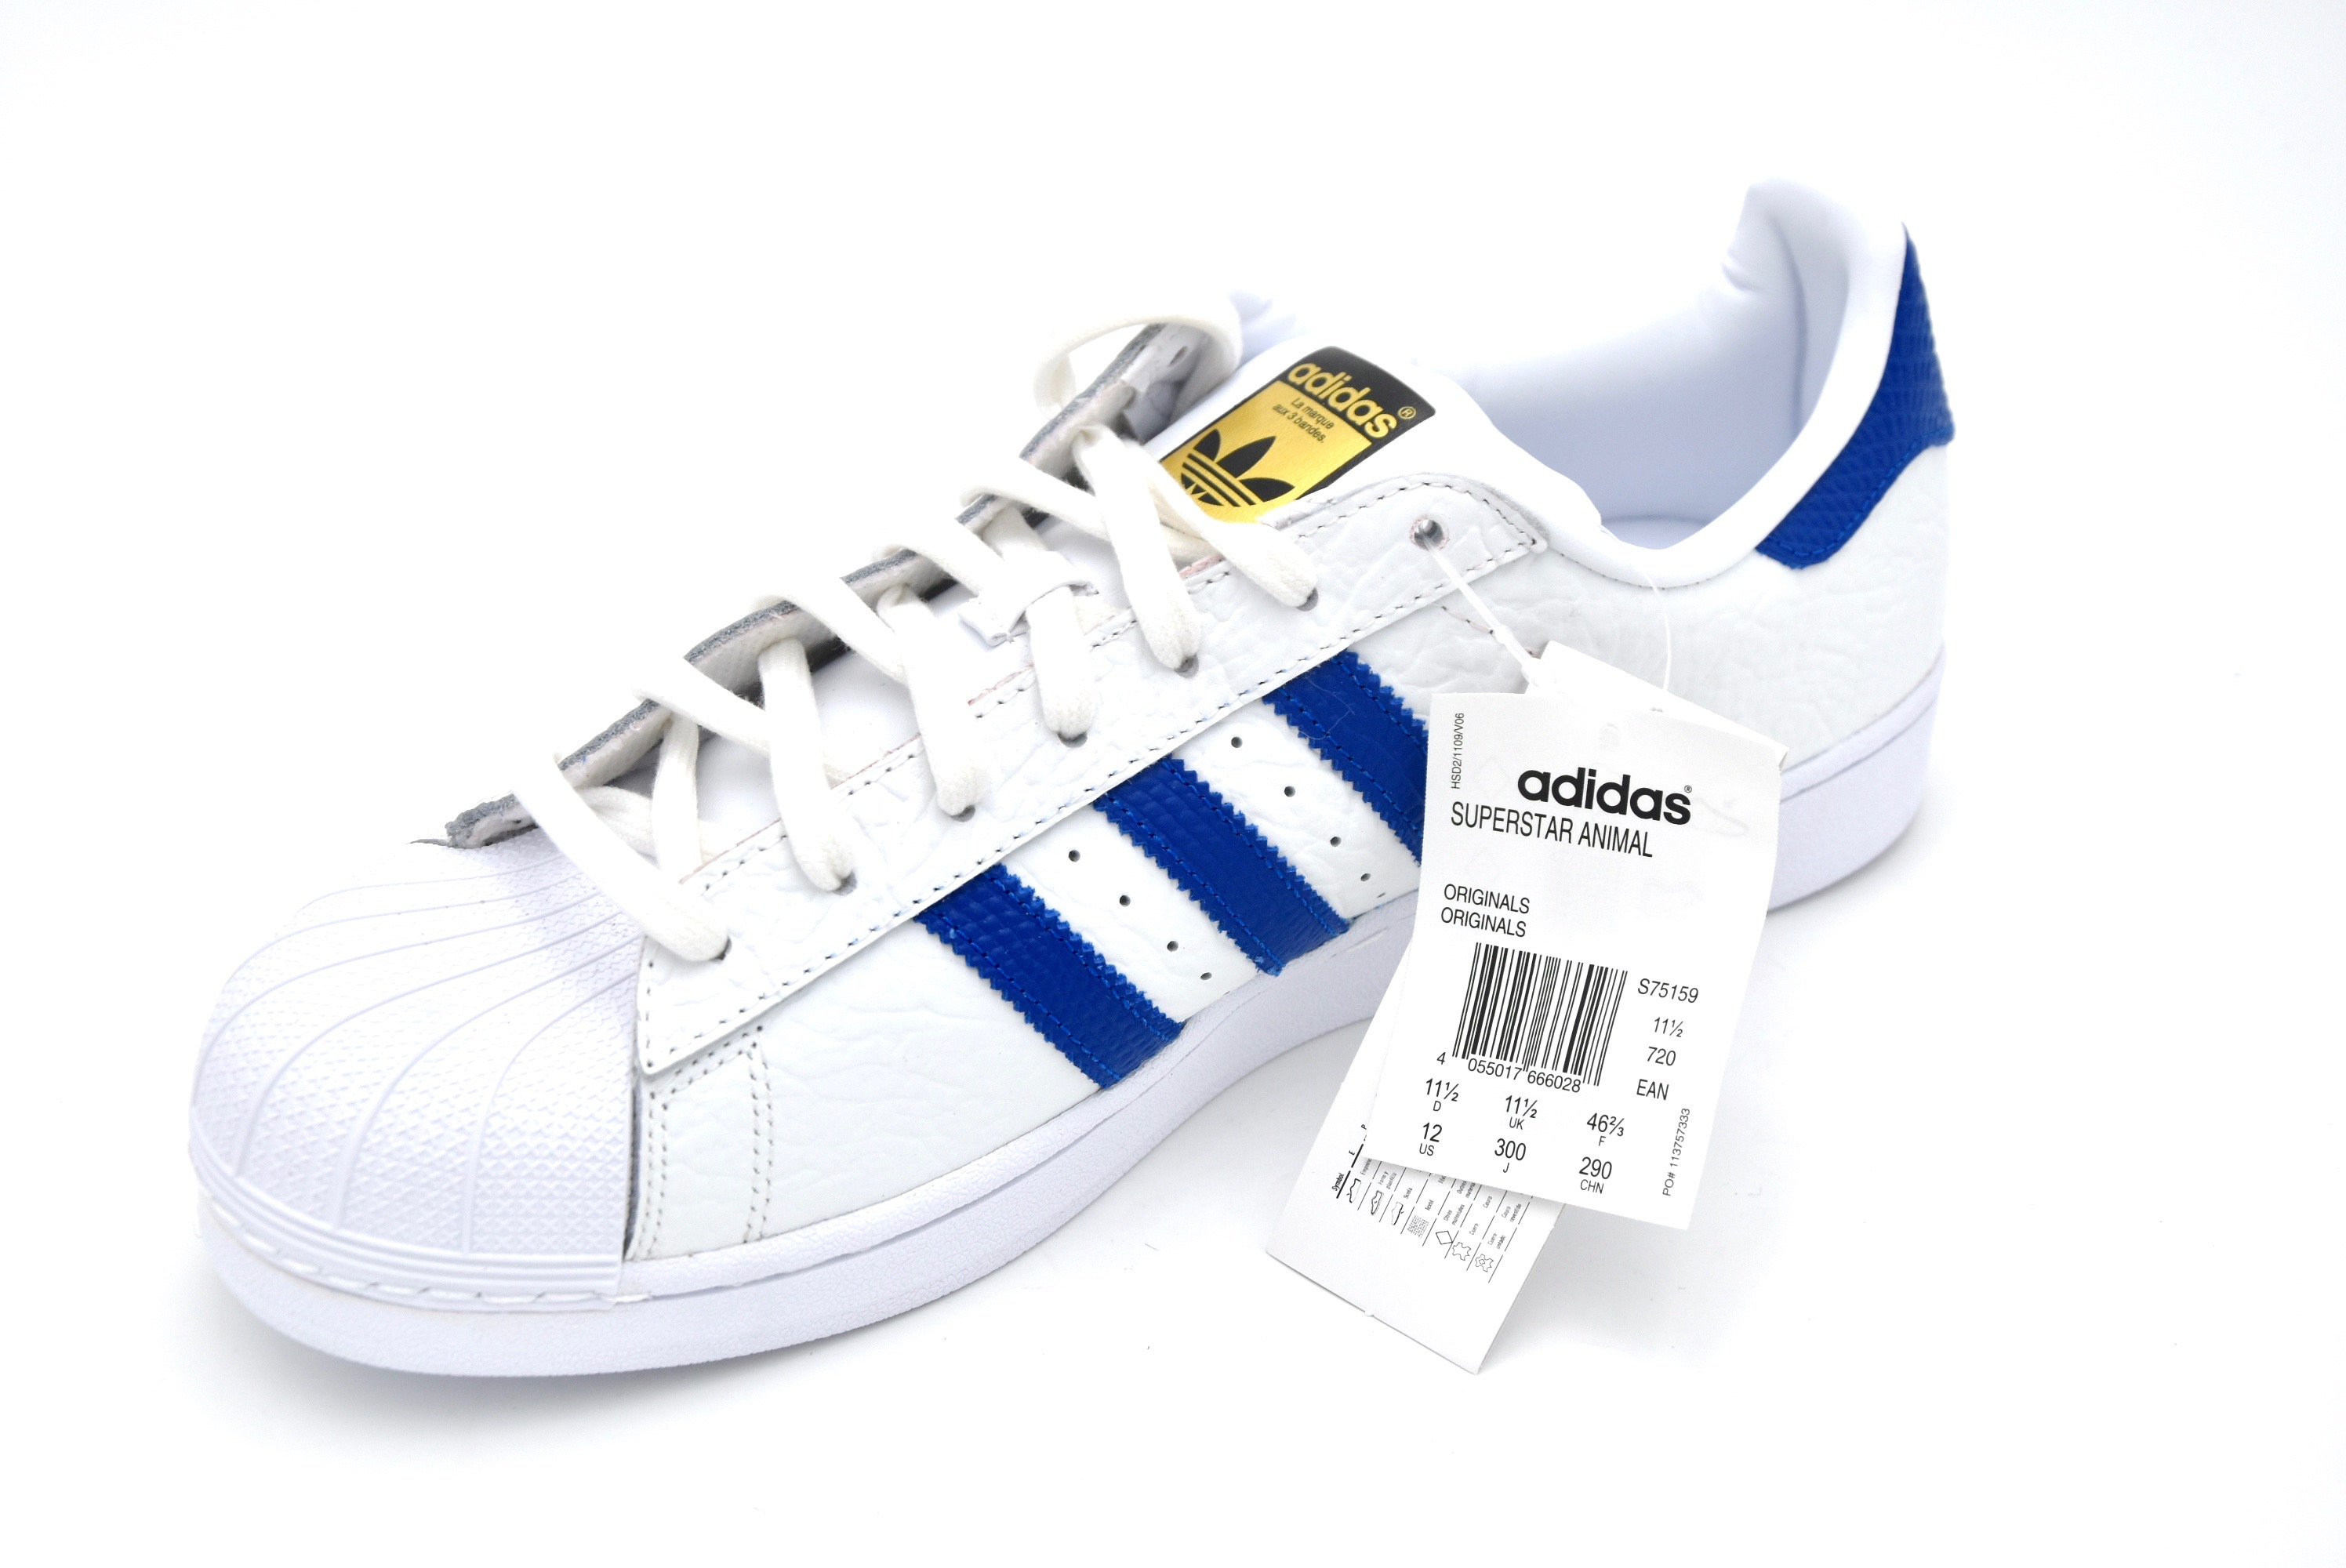 adidas Superstar Animal S75159 Sneakersnstuff | sneakers